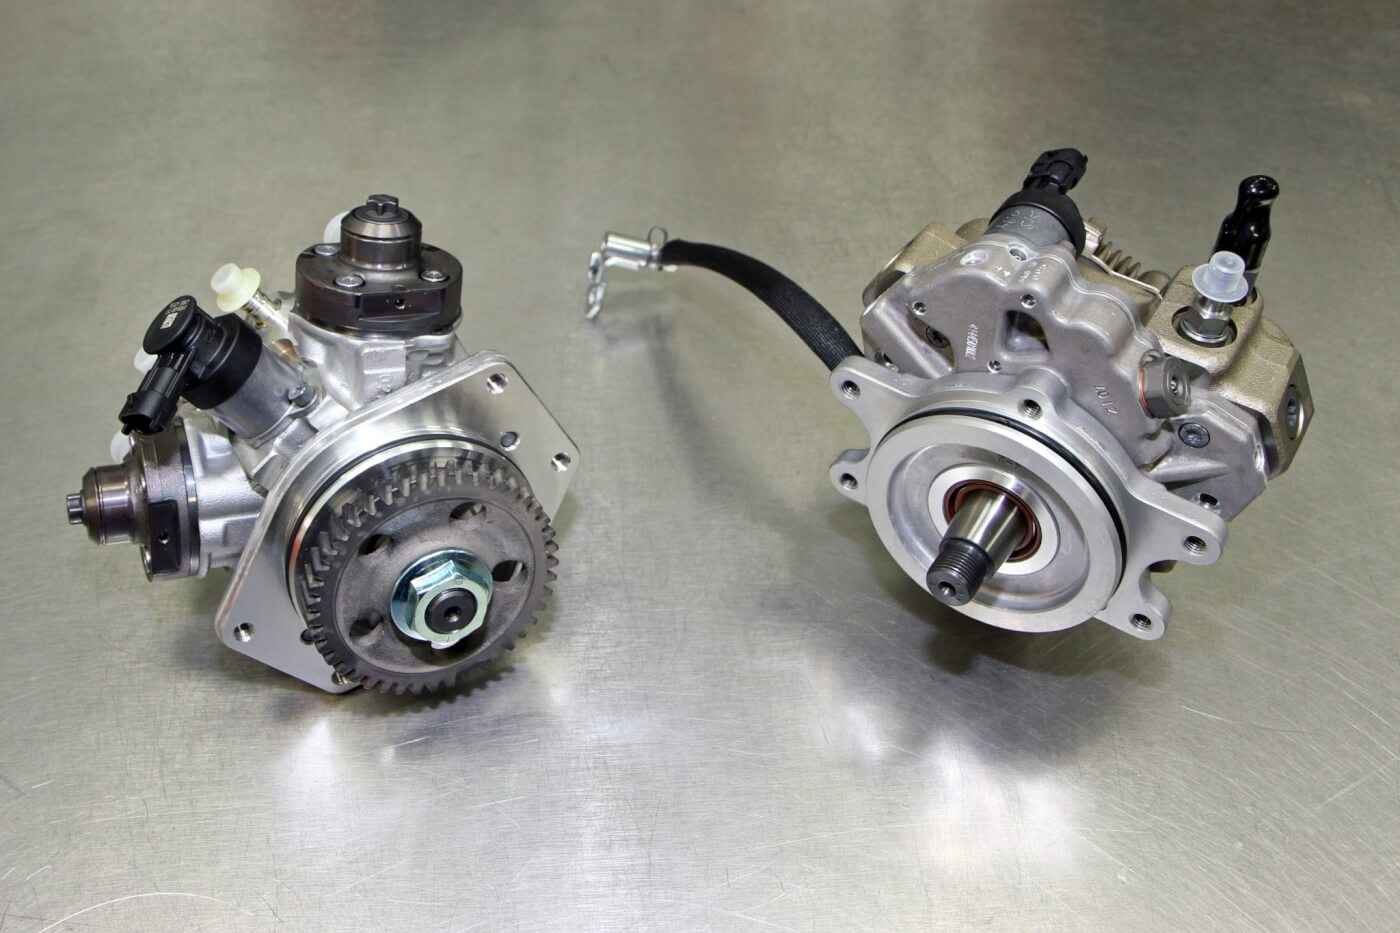 18. A stock CP4 is shown on the left with the S&S replacement CP3 unit shown on the right. The CP4 to CP3 upgrade kit for the Duramax engine will even work with the ninth injector for emissions compliance, while replacing the troublesome CP4 with the more reliable CP3.